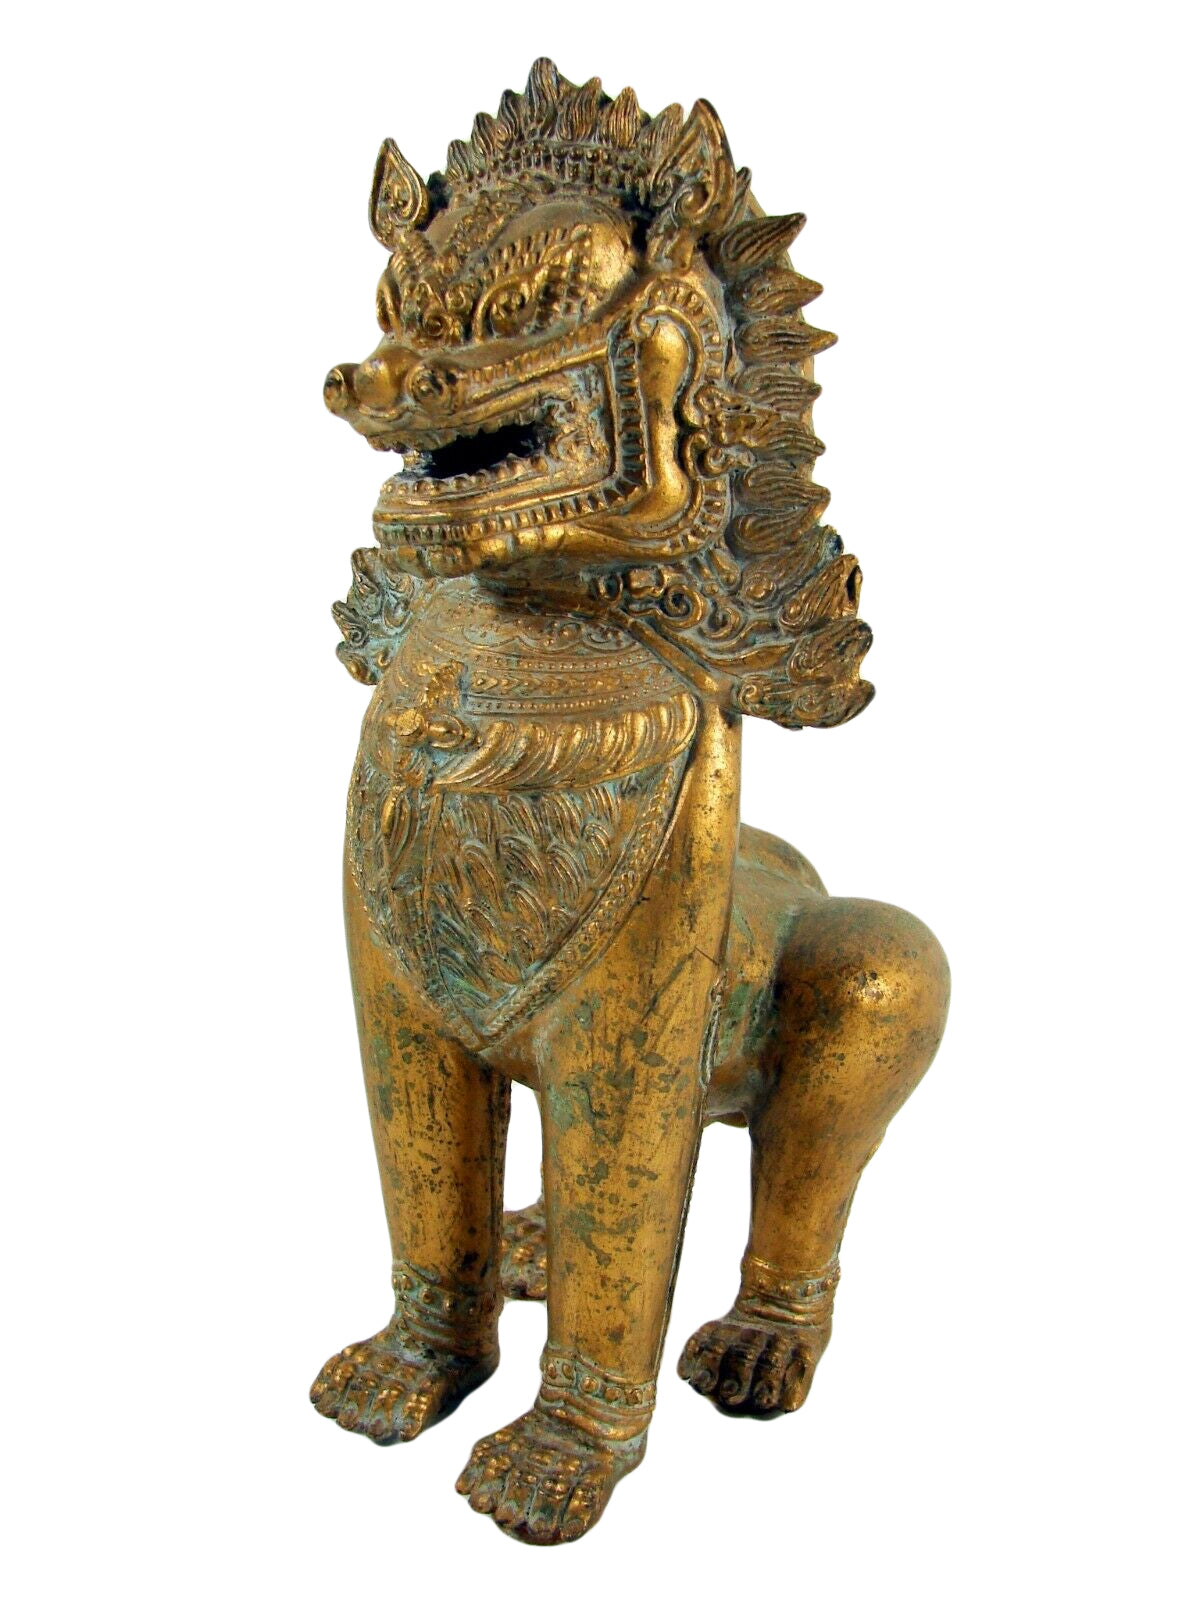 Antique Foo Foo Dog Chinese Imperial Guardian Lion Shishi Khmer Sculpture Cambodia Bronze Gilt Statue 11""